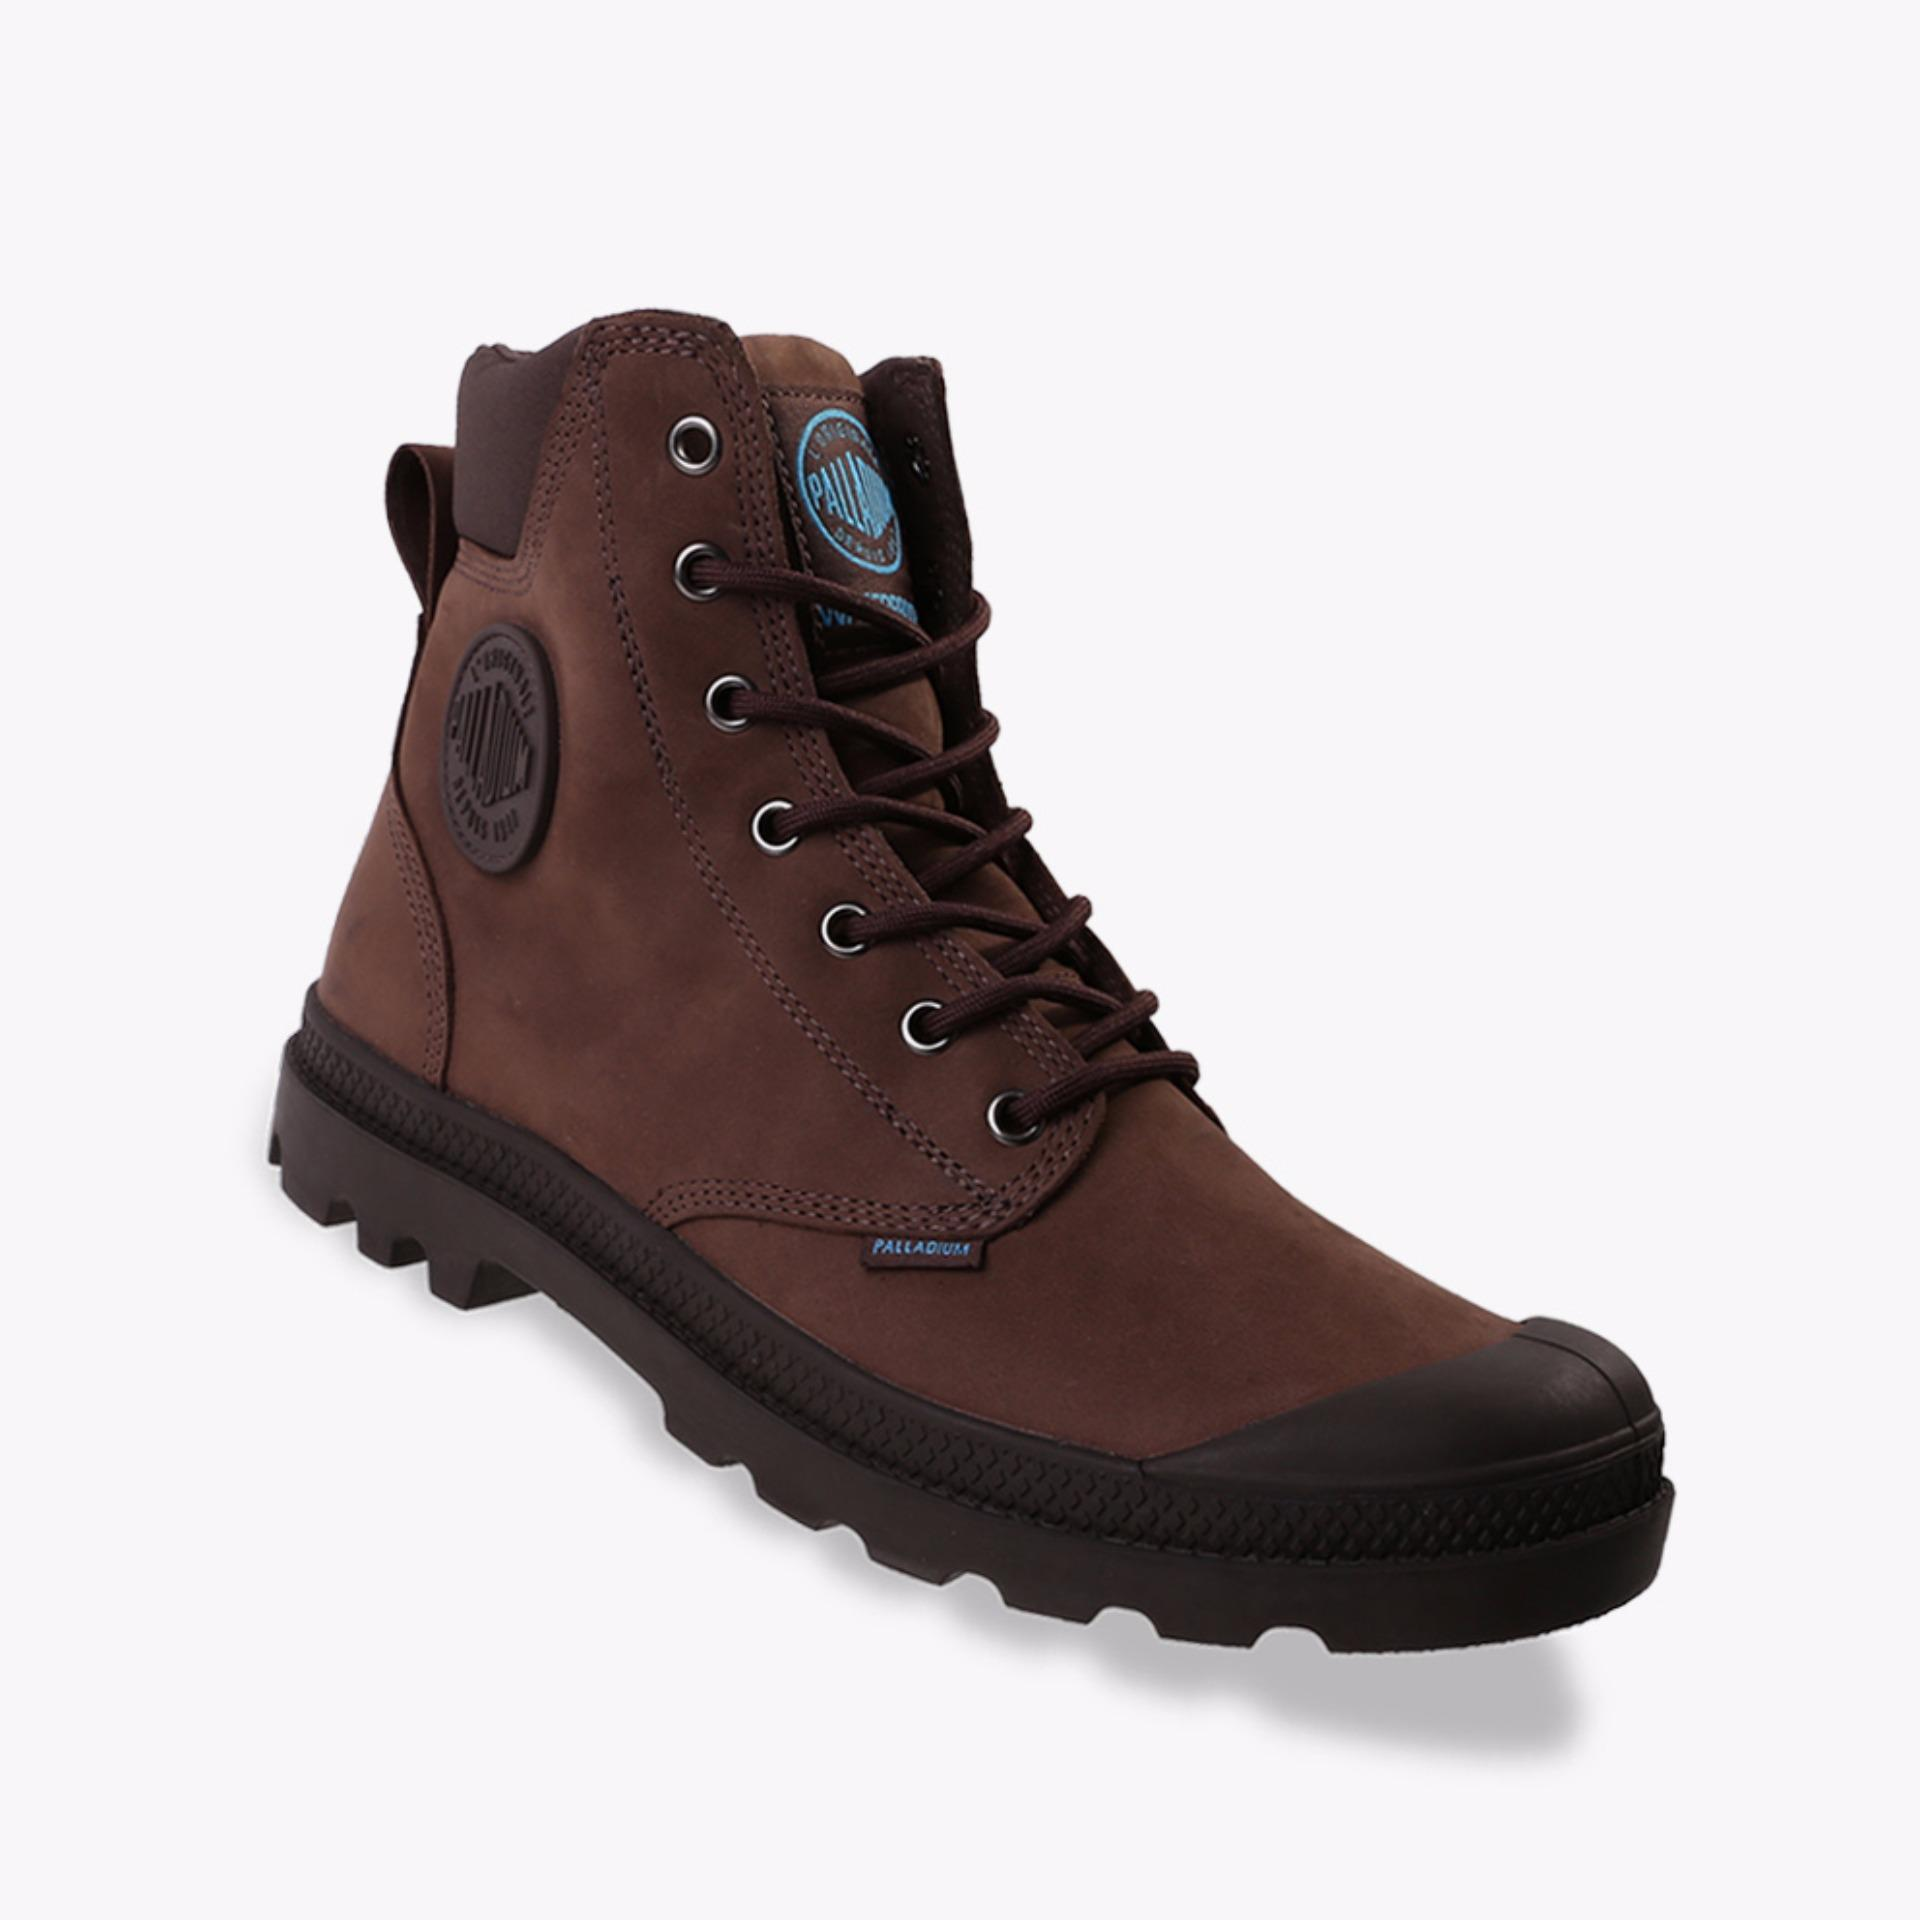 Palladium Pampa Cuff Waterproof Lux Unisex Boots Shoes - Cokelat 8175c11cf9